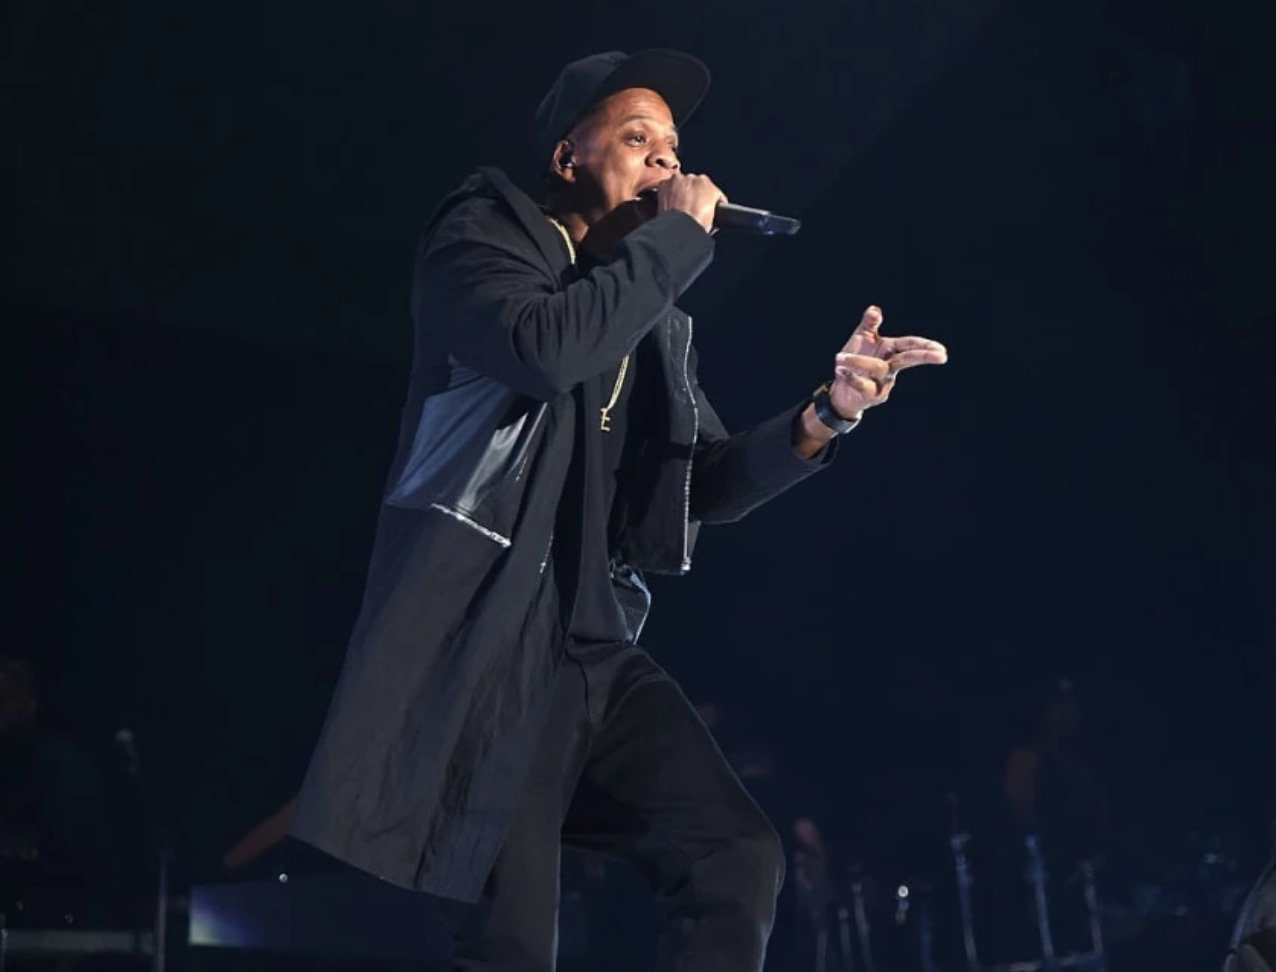 jay-z-performs-at-tidal-x-1020-in-brooklyn-october-20-2015-jamie-mccarthy-getty-images.jpg